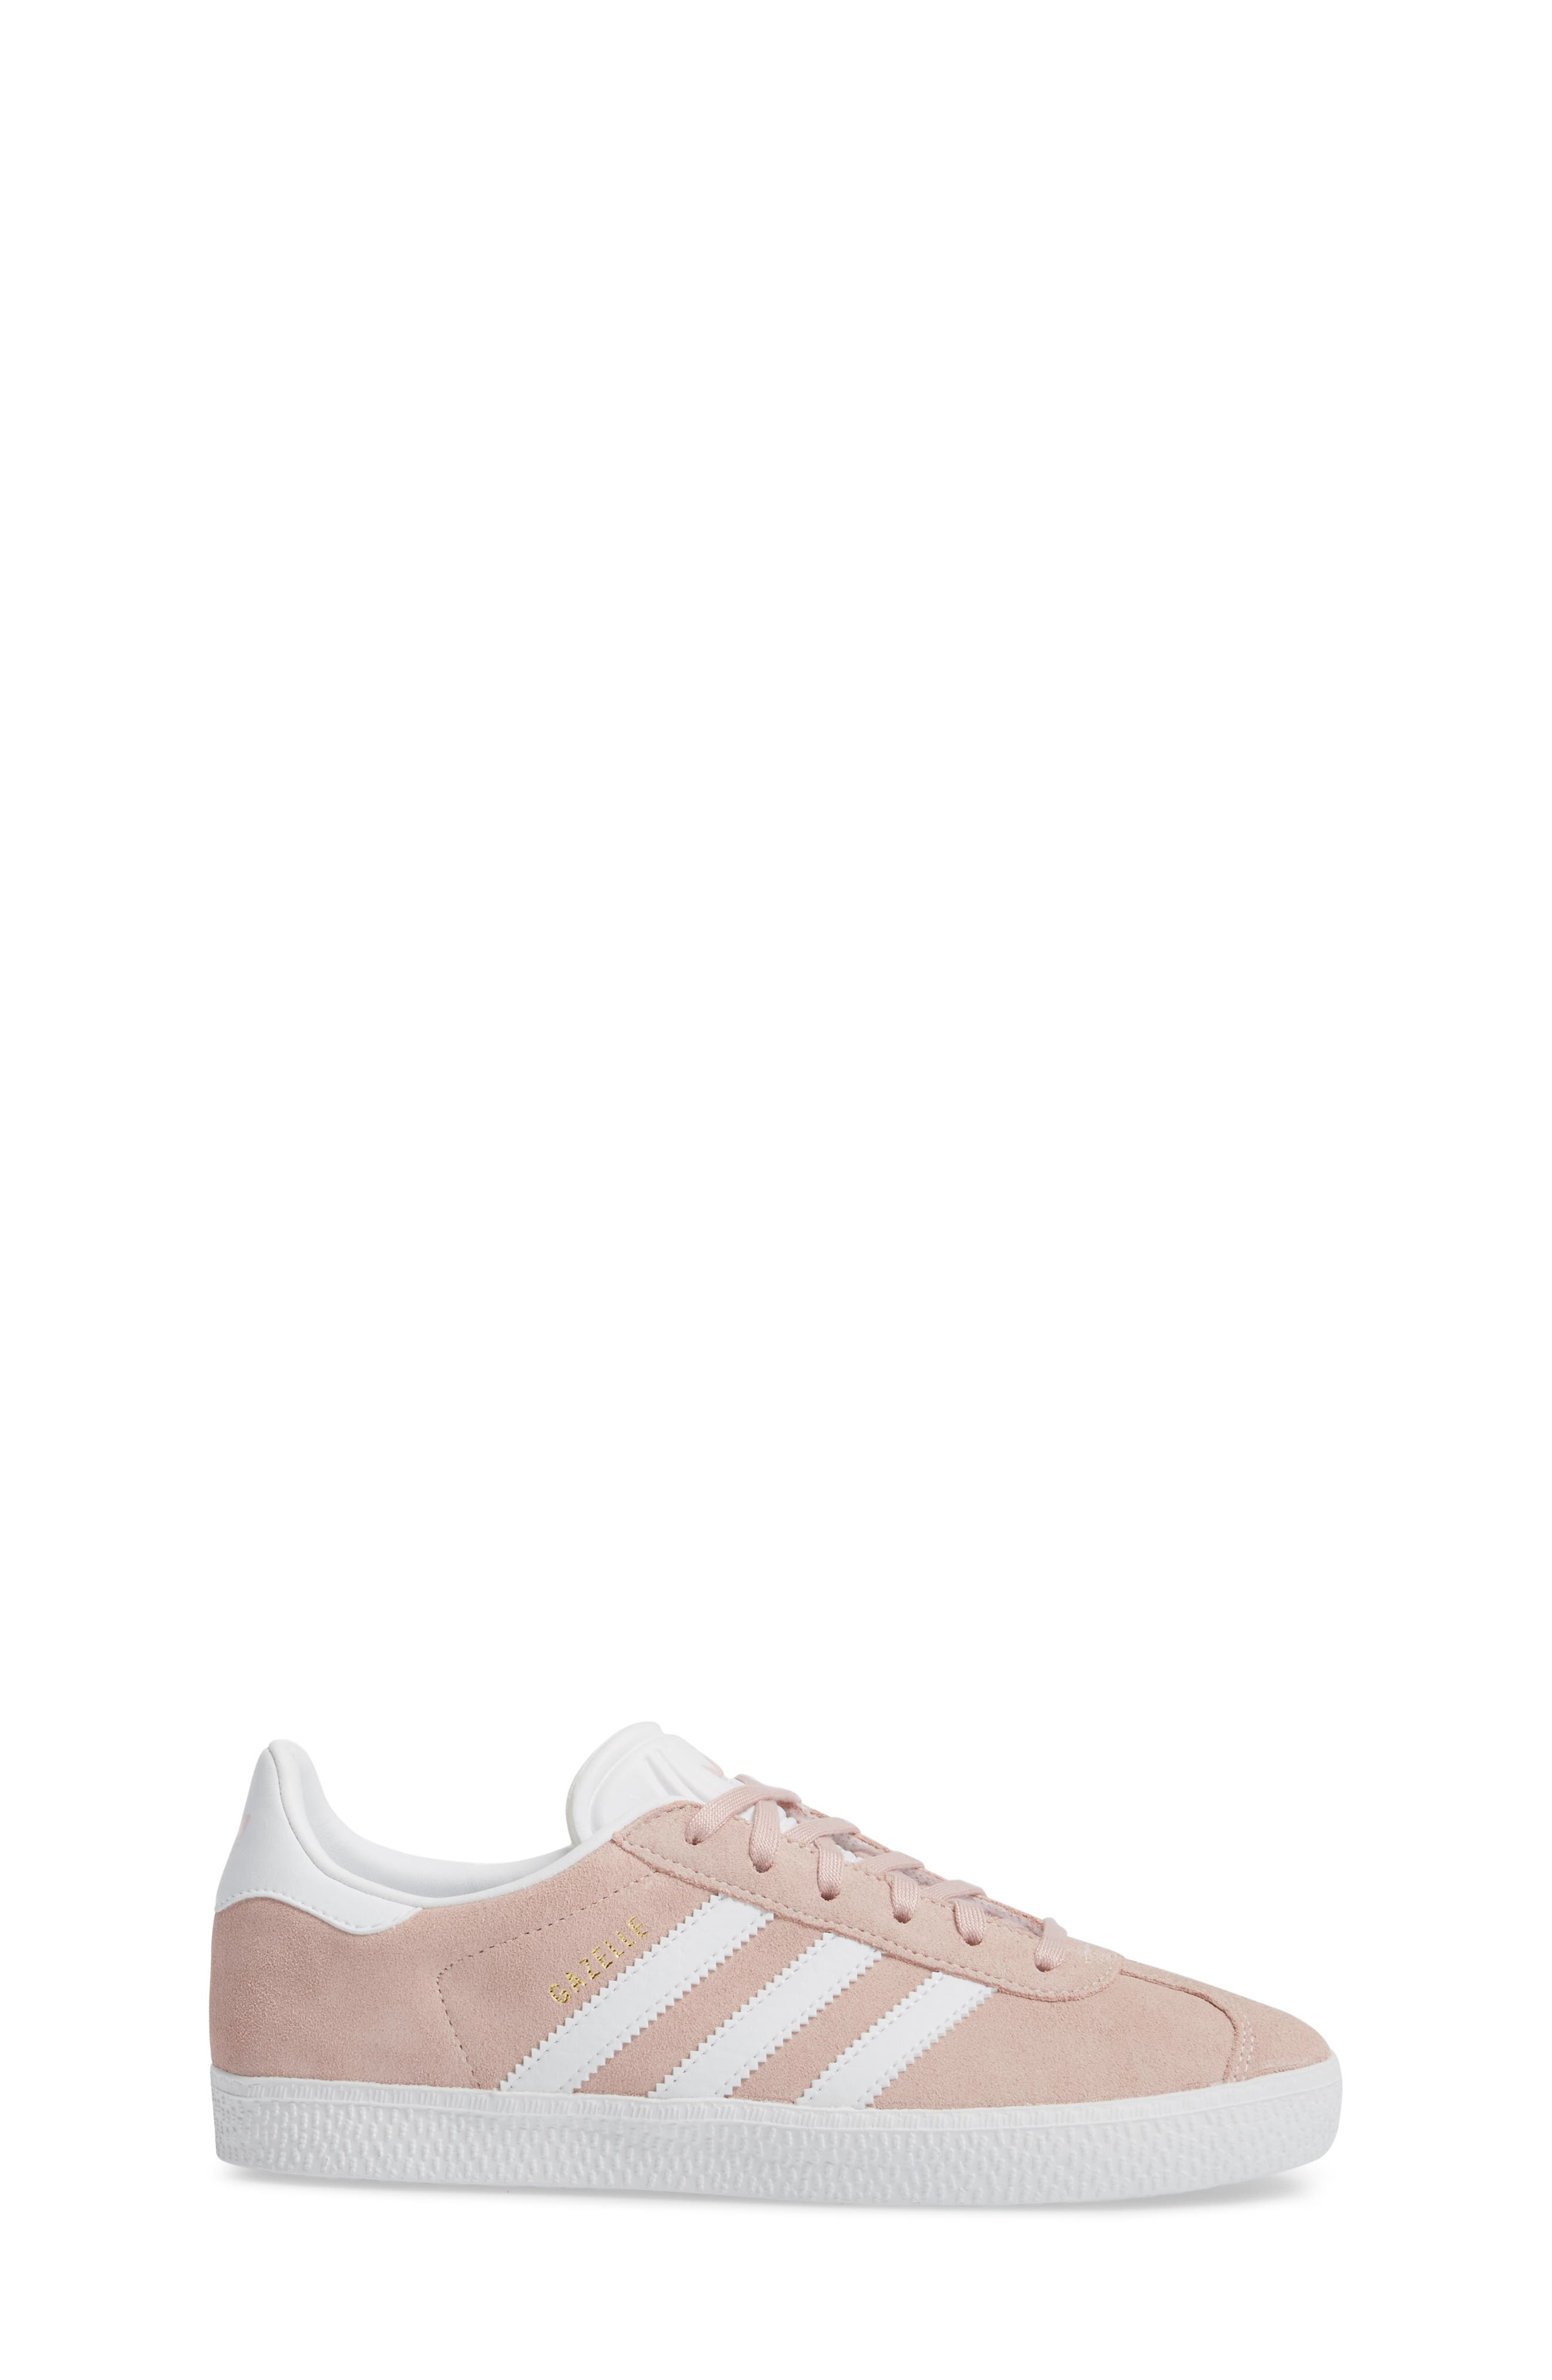 Gazelle Sneaker,                             Alternate thumbnail 3, color,                             Icy Pink/ White/ Gold